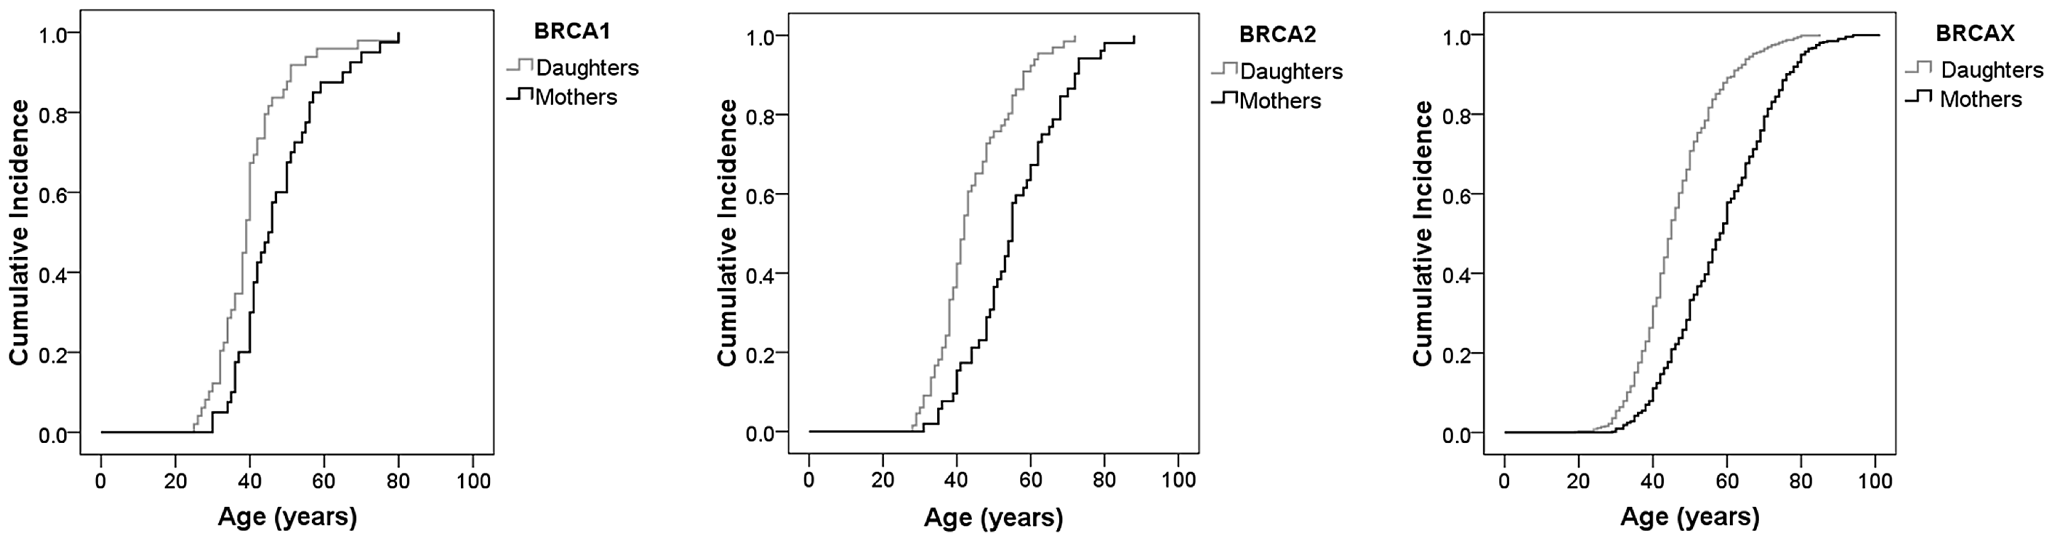 Anticipation effect in the age of breast cancer onset in the familial breast cancer genetic subgroups.